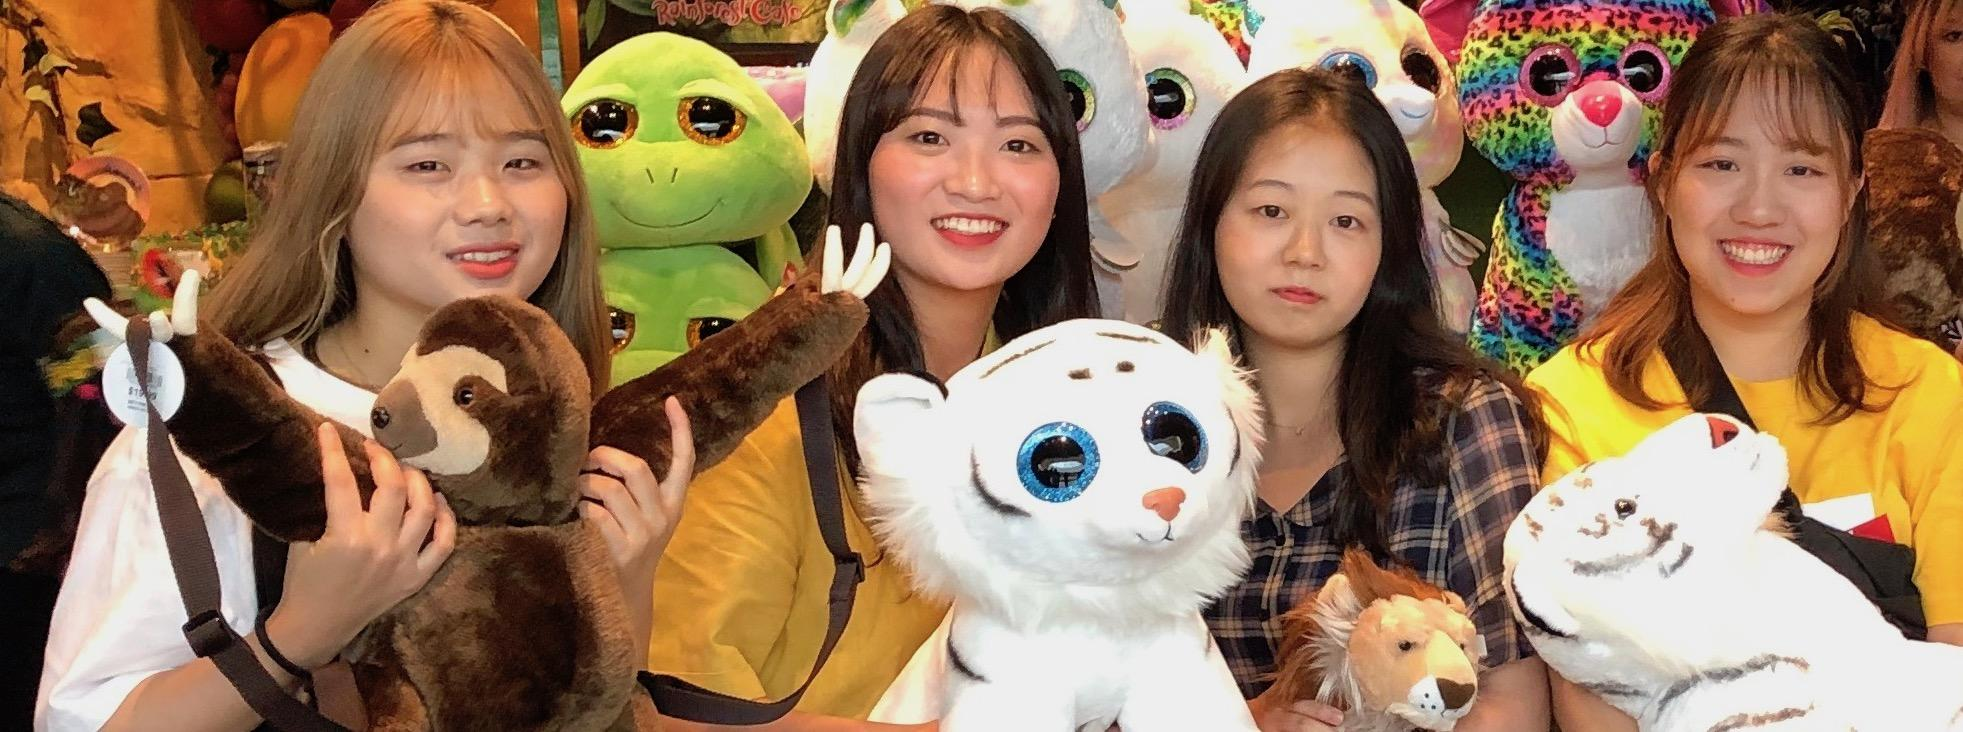 Korean students at the Rainforest Cafe in the Mall of America